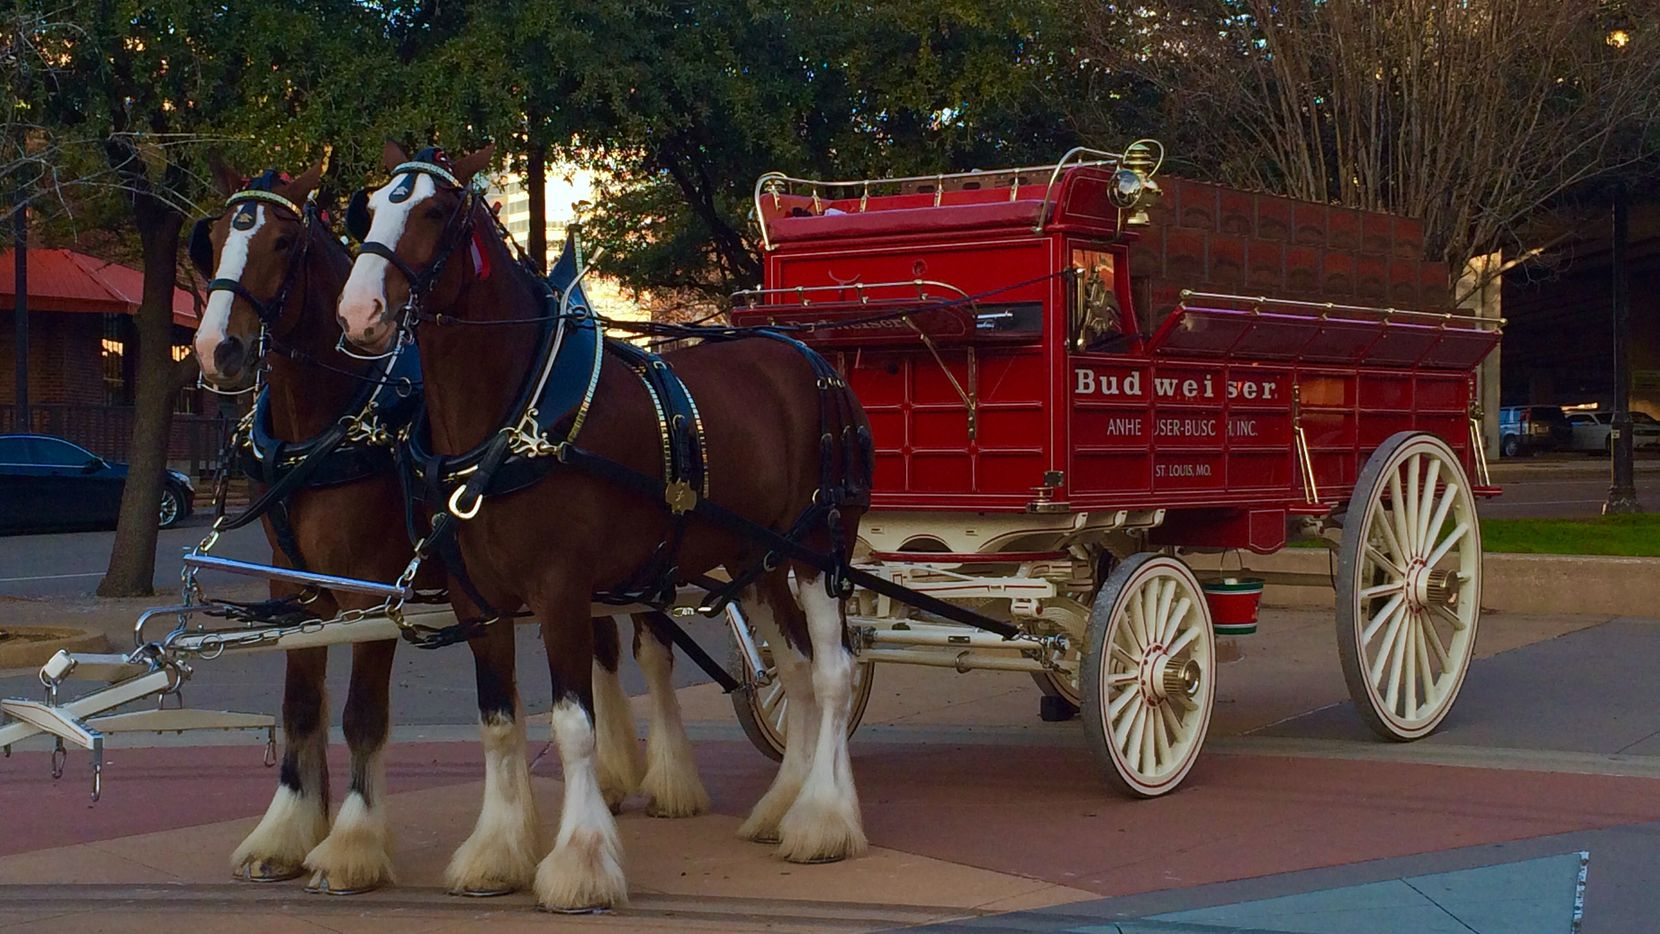 The Budweiser Clydesdales are in town to promote the Anheuser-Busch conference happening next week.